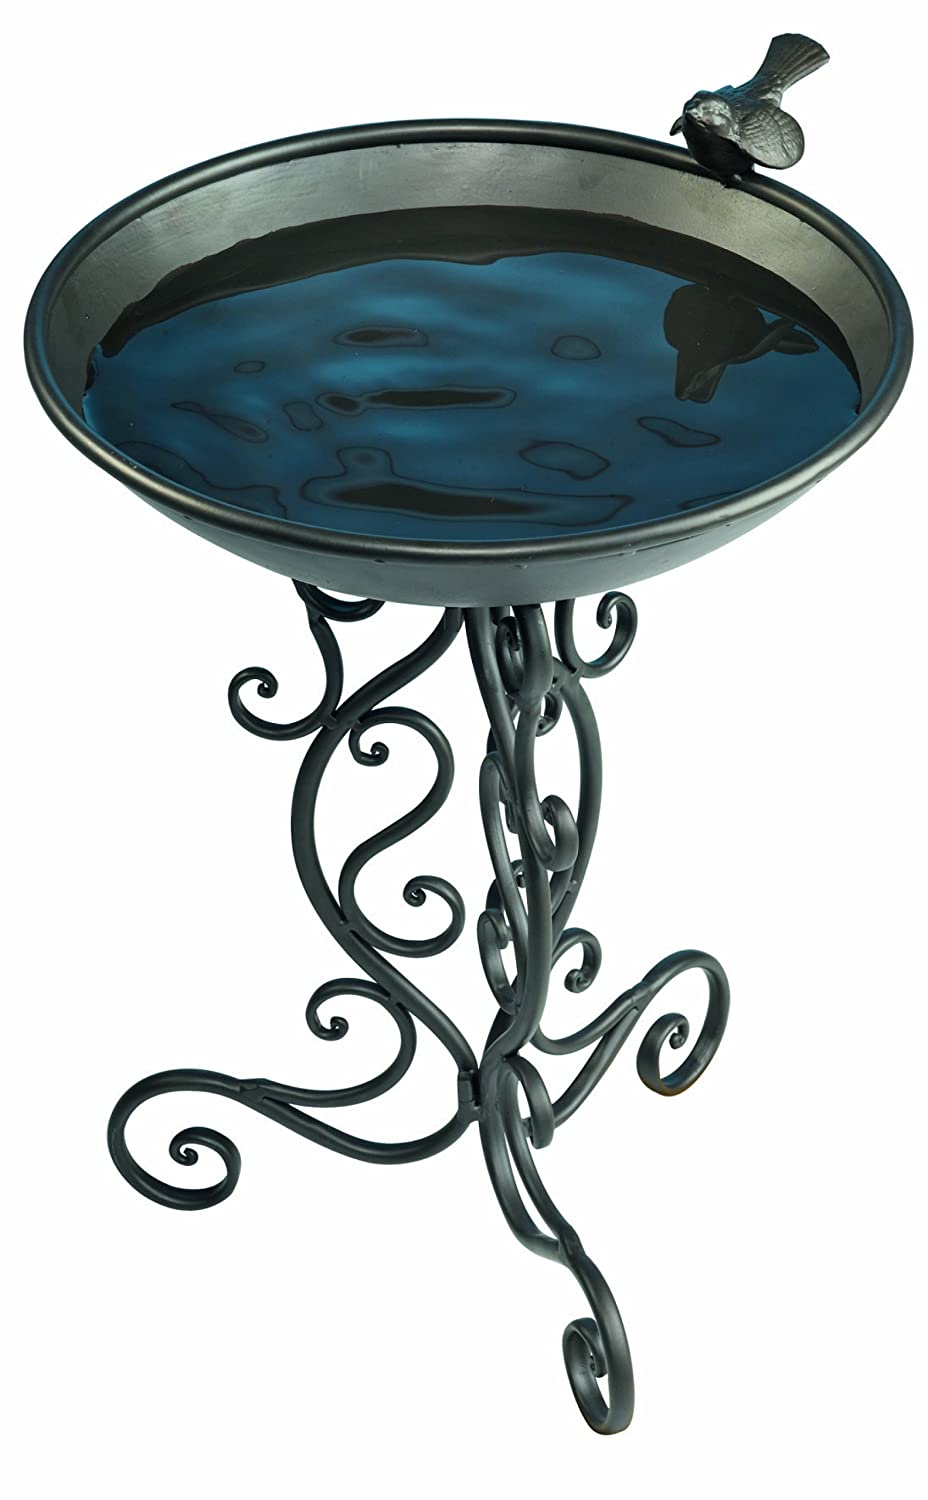 Ornate Metal Bird Bath Gardman USA BA01272